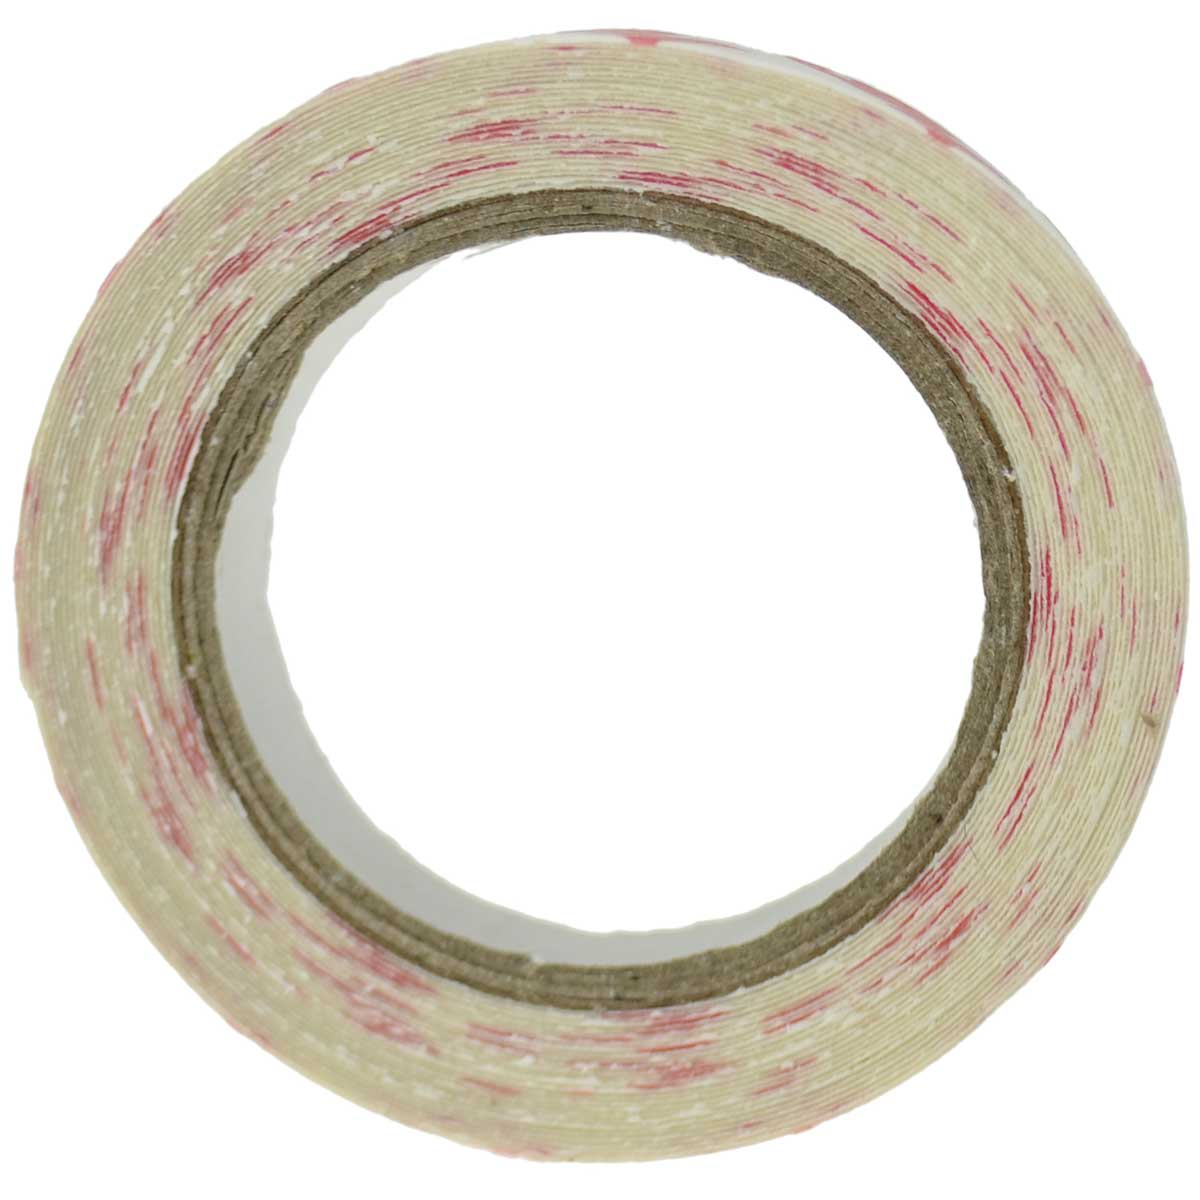 1 Roll Pink Jumbo L-Shaped Foam Edge Protector 78.7 inches (2 meters)